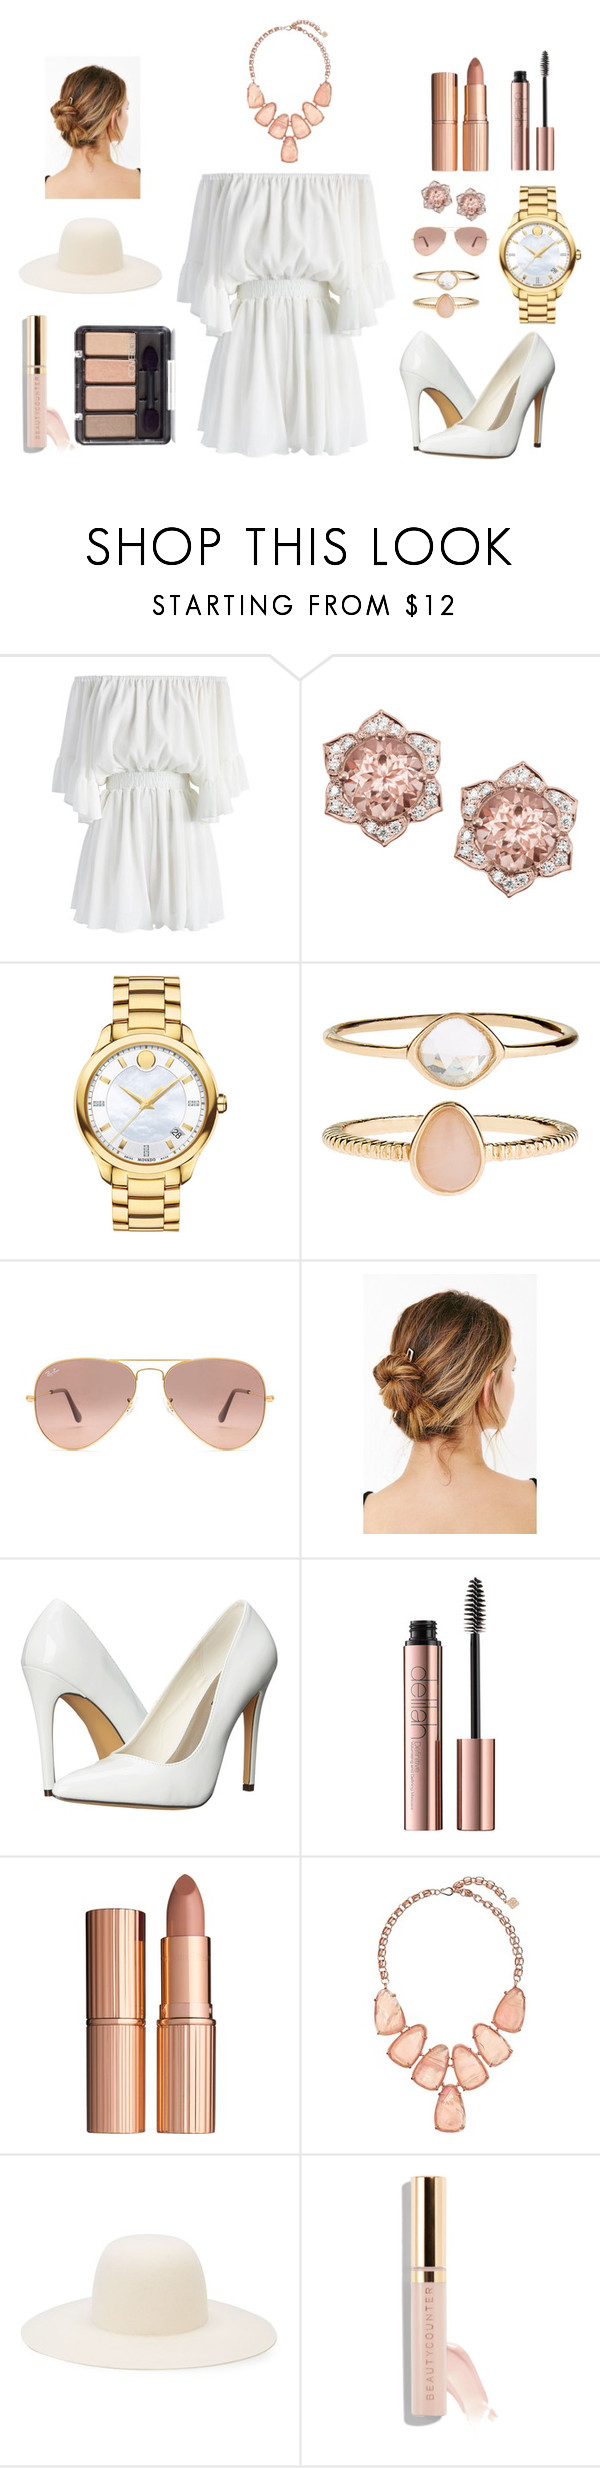 """""""Rose gold and white 💕"""" by georgie-peorgie ❤ liked on Polyvore featuring Chicwish, Movado, Accessorize, Ray-Ban, Urban Outfitters, Michael Antonio, Charlotte Tilbury, Kendra Scott, Off-White and Beautycounter"""